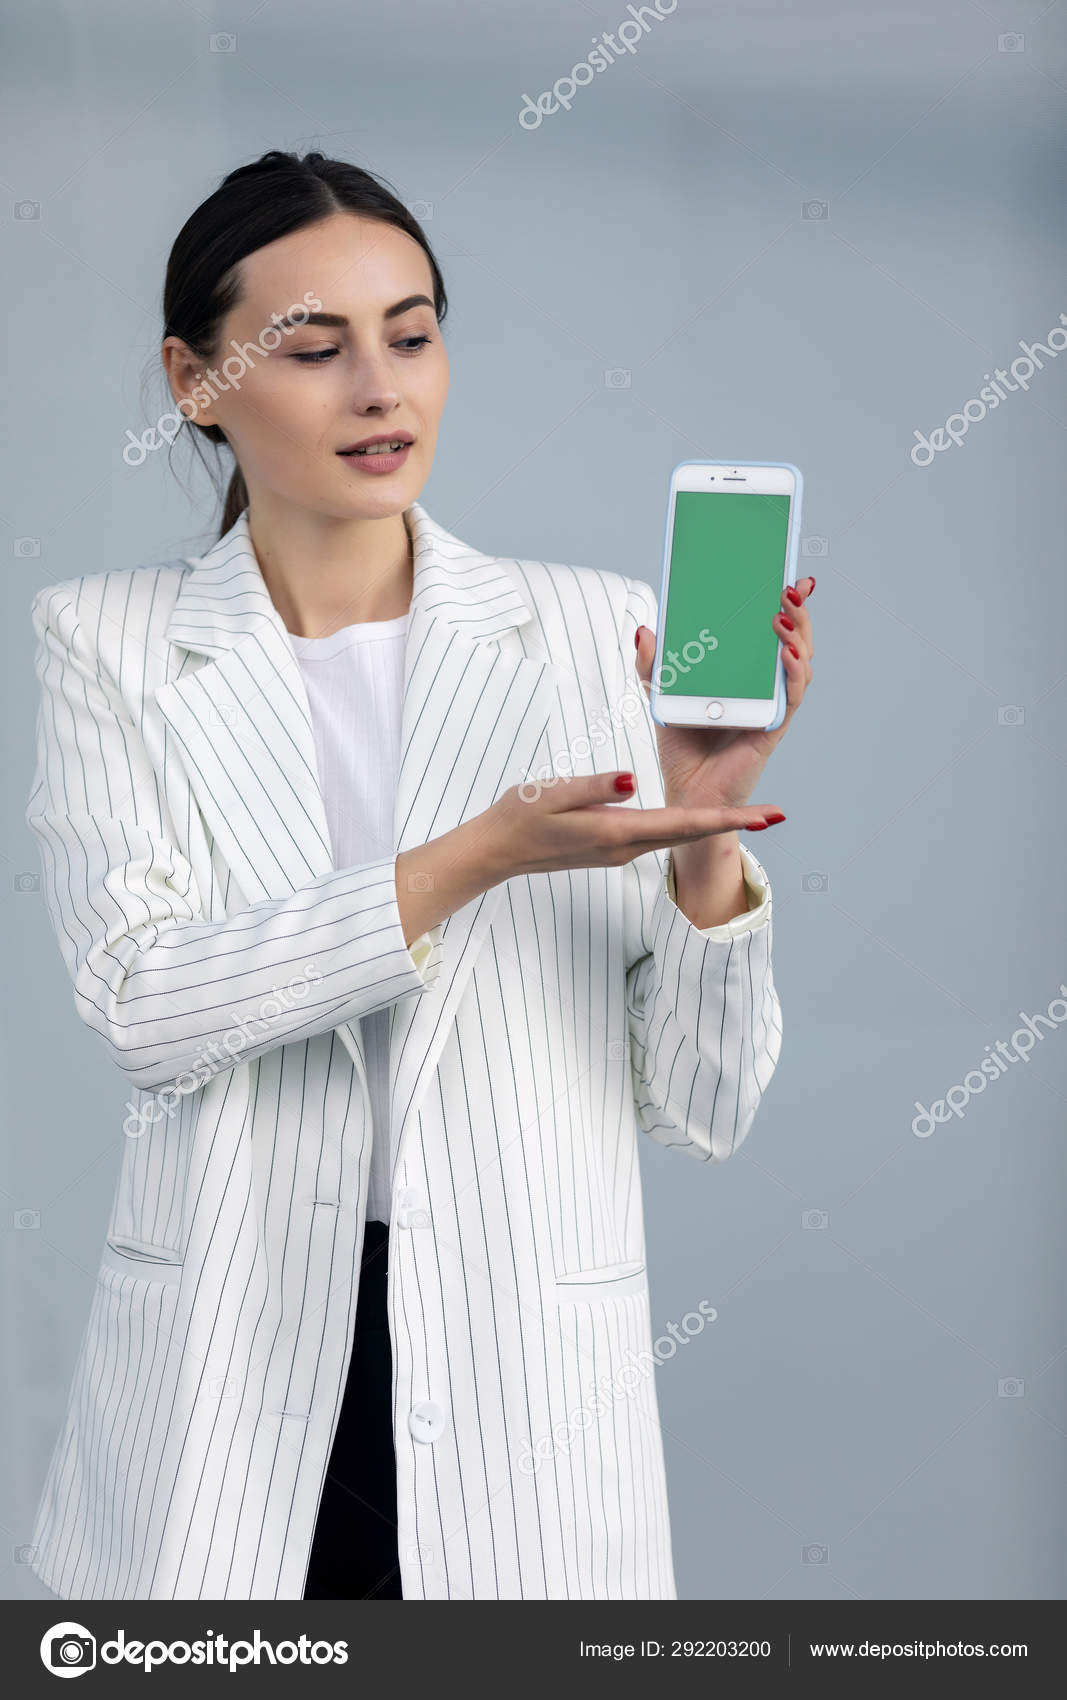 Smiling Young Business Woman White Jacket Showing Smartphone